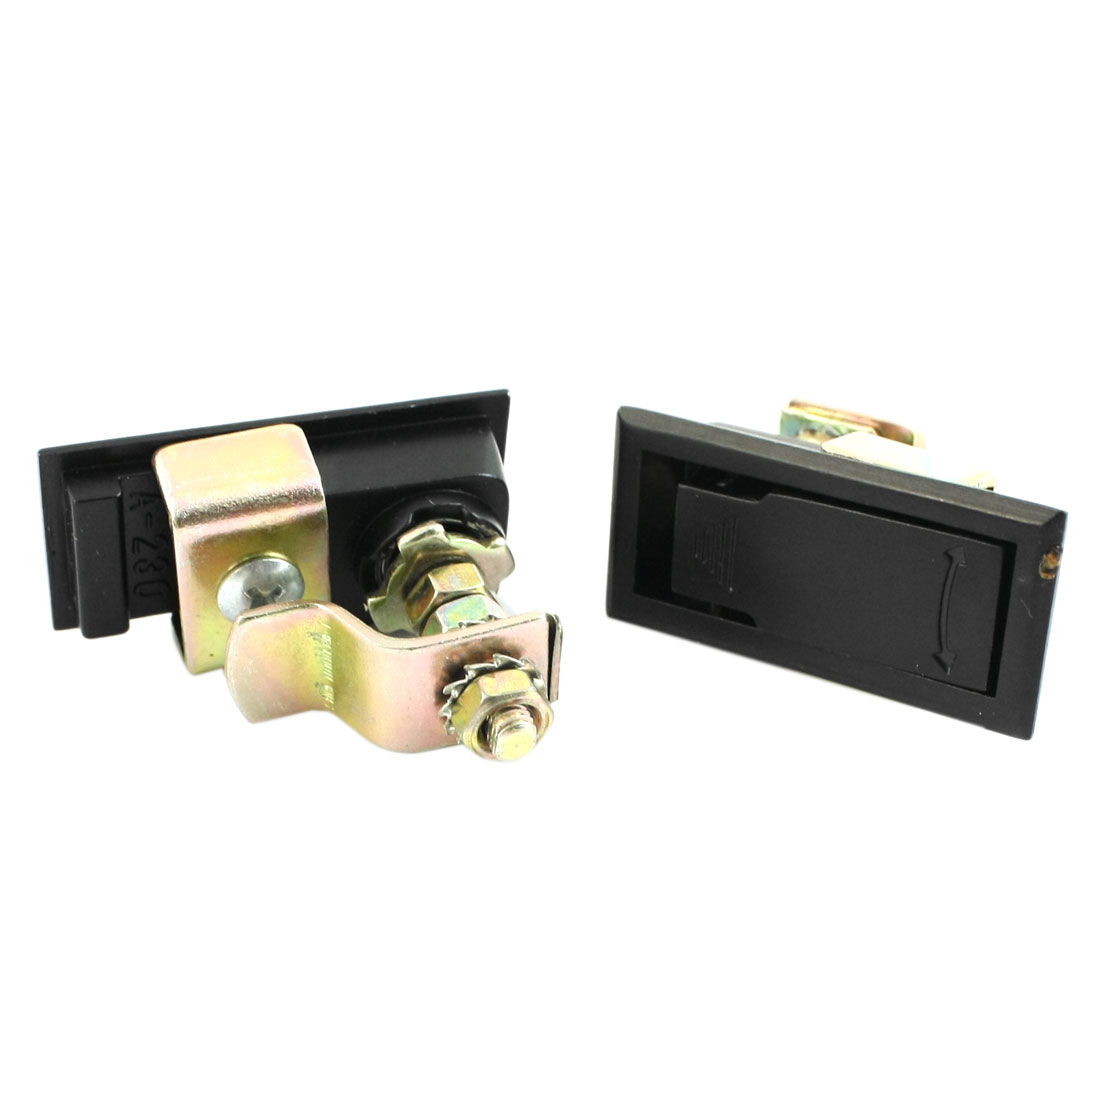 Black Panel Pop Up Plane Type Cabinet Door Lock 2 Pcs